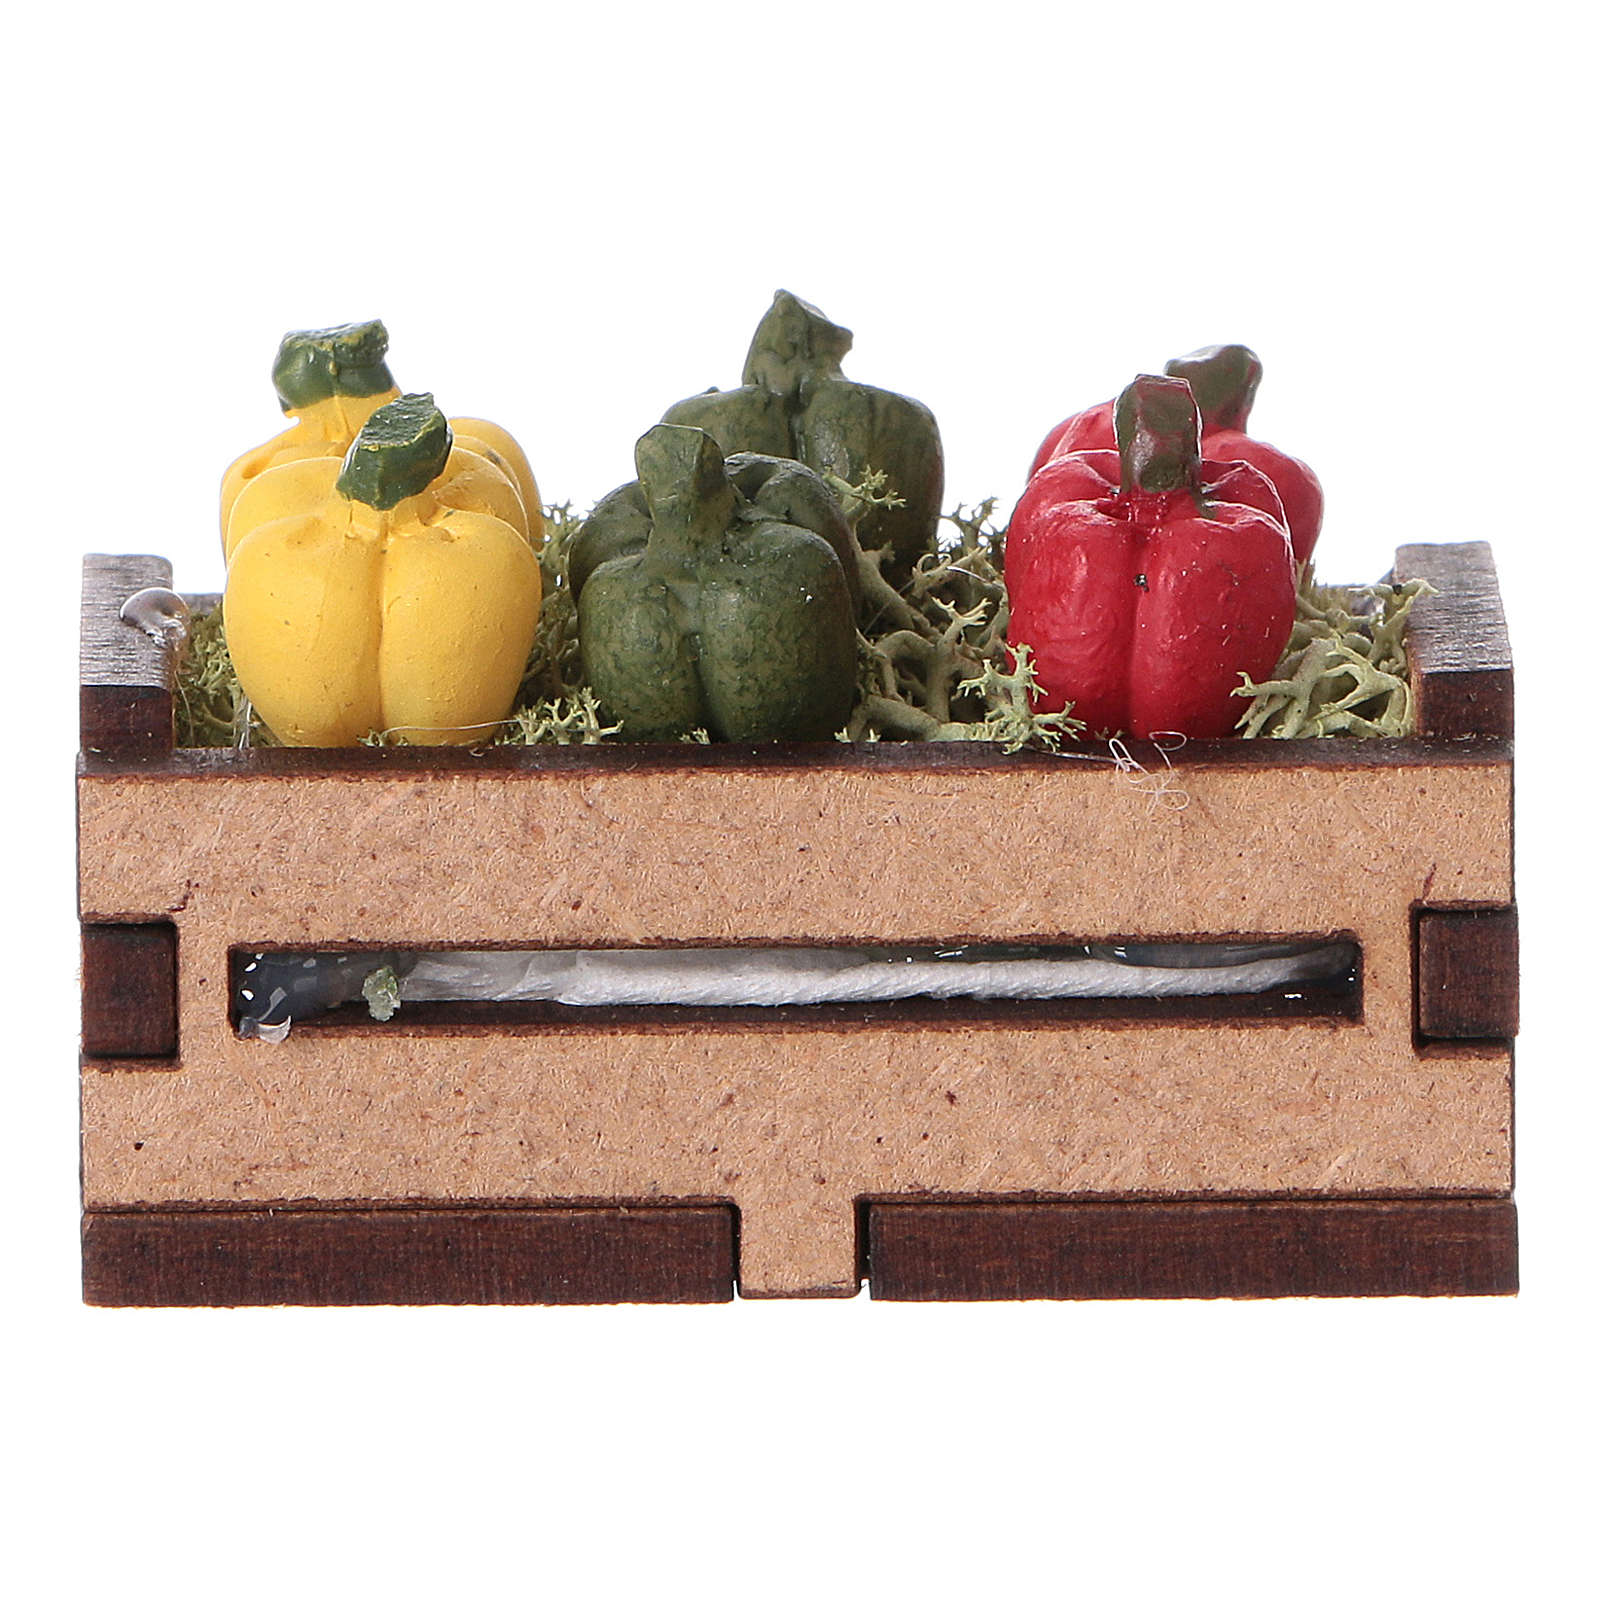 Case of bell peppers 5x5x5 cm 4